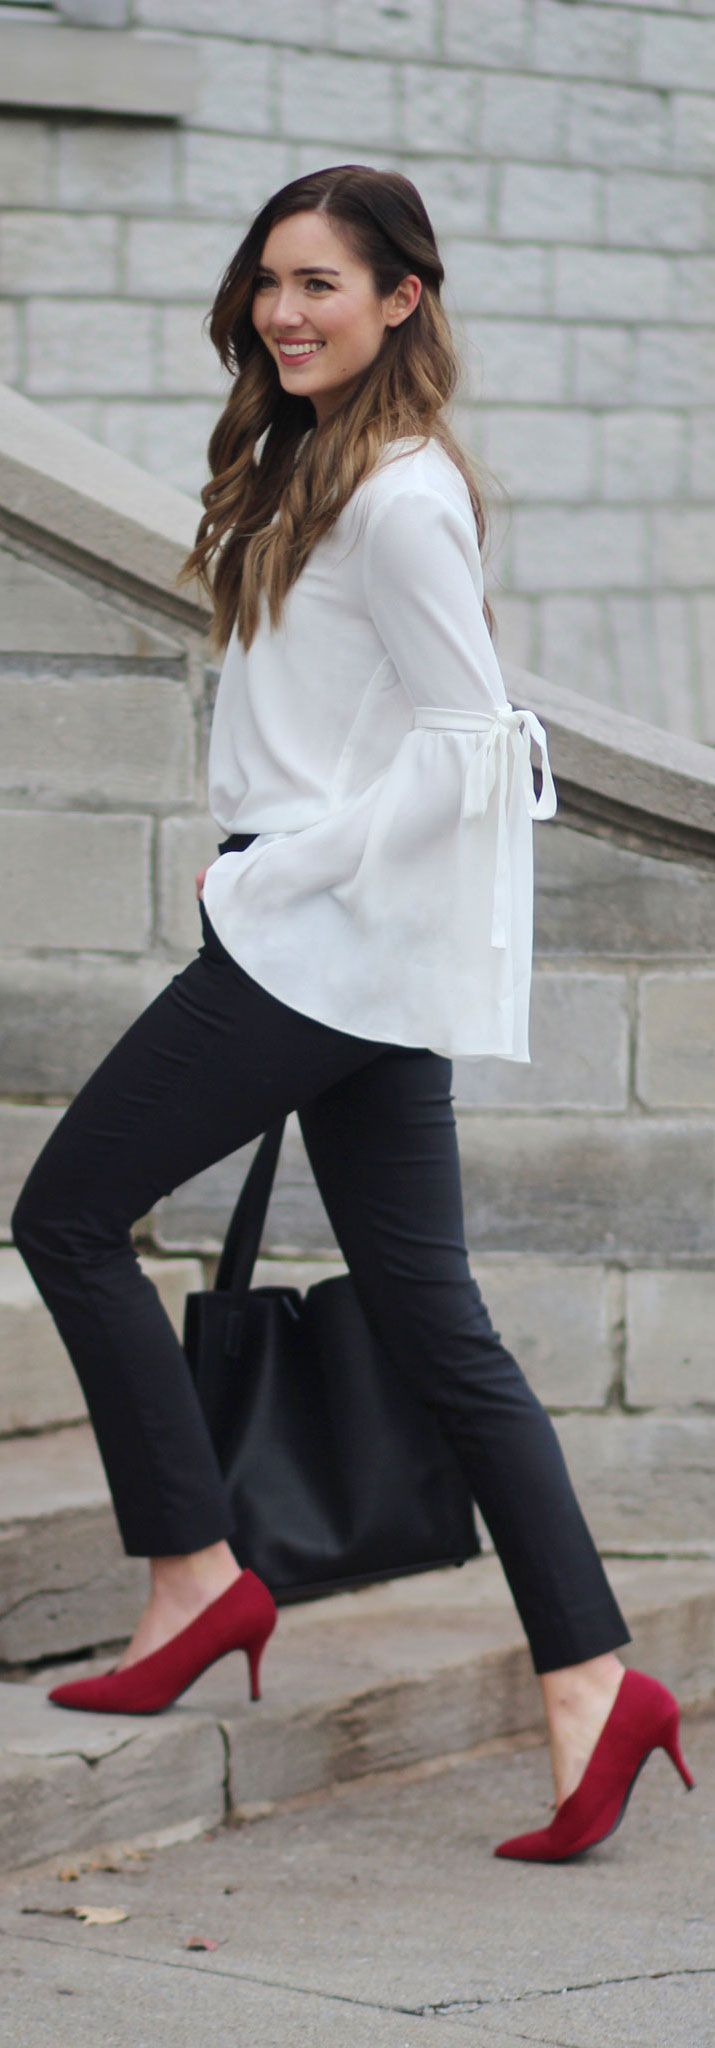 VEGAN FASHION: faux-suede heels and cruelty-free clothing (this white bell sleeve top is so affordable!) Perfect outfit for the holidays, work or any date night/night out! #fashion #fashionblogger #vegan #crueltyfree Marie's Bazaar